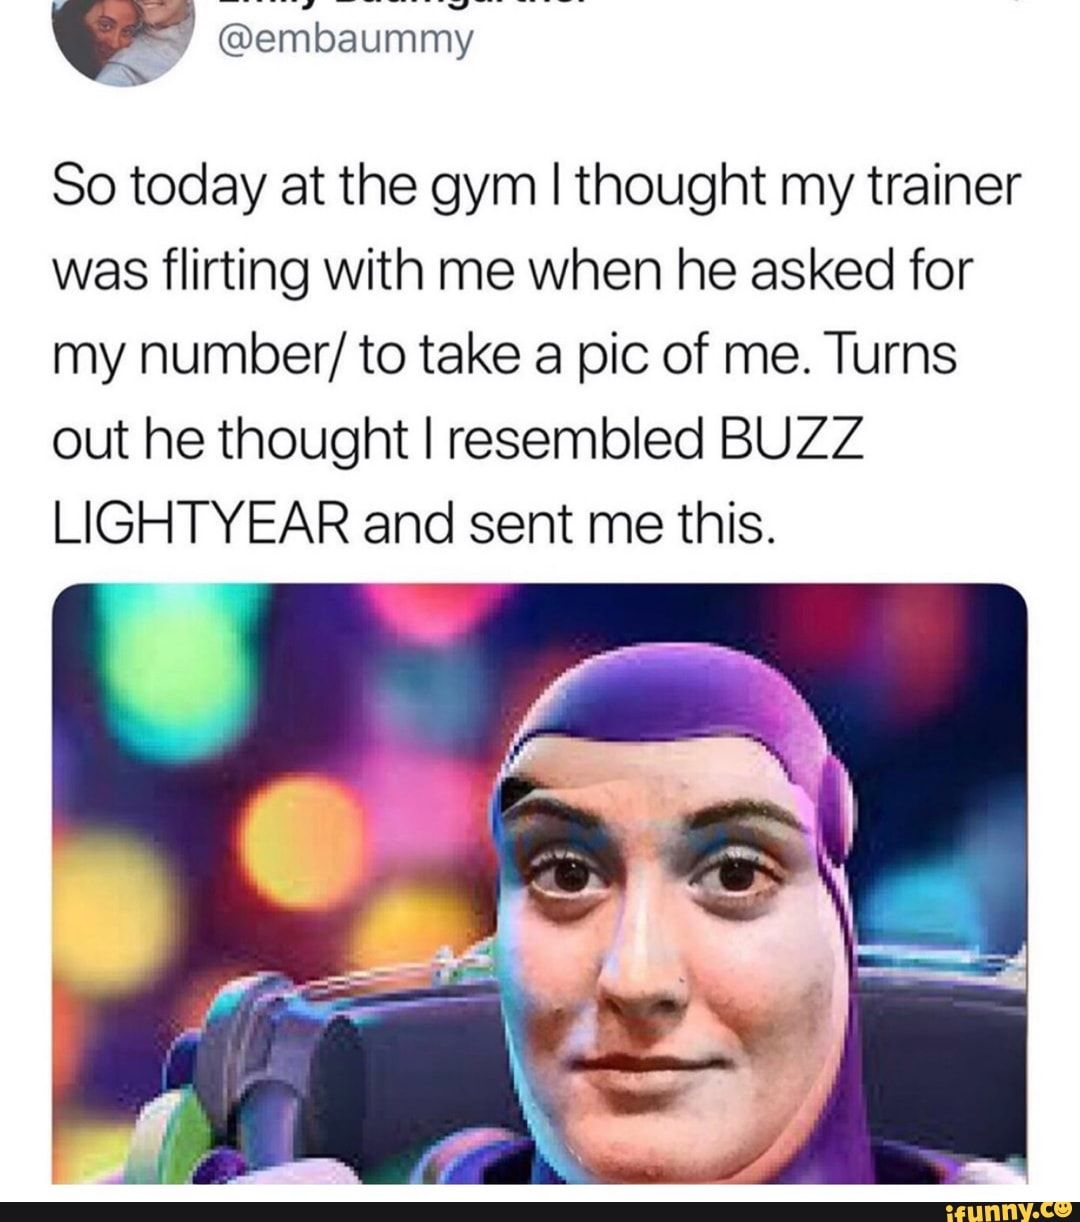 So Today At The Gym I Thought My Trainer Was Fiirting With Me When